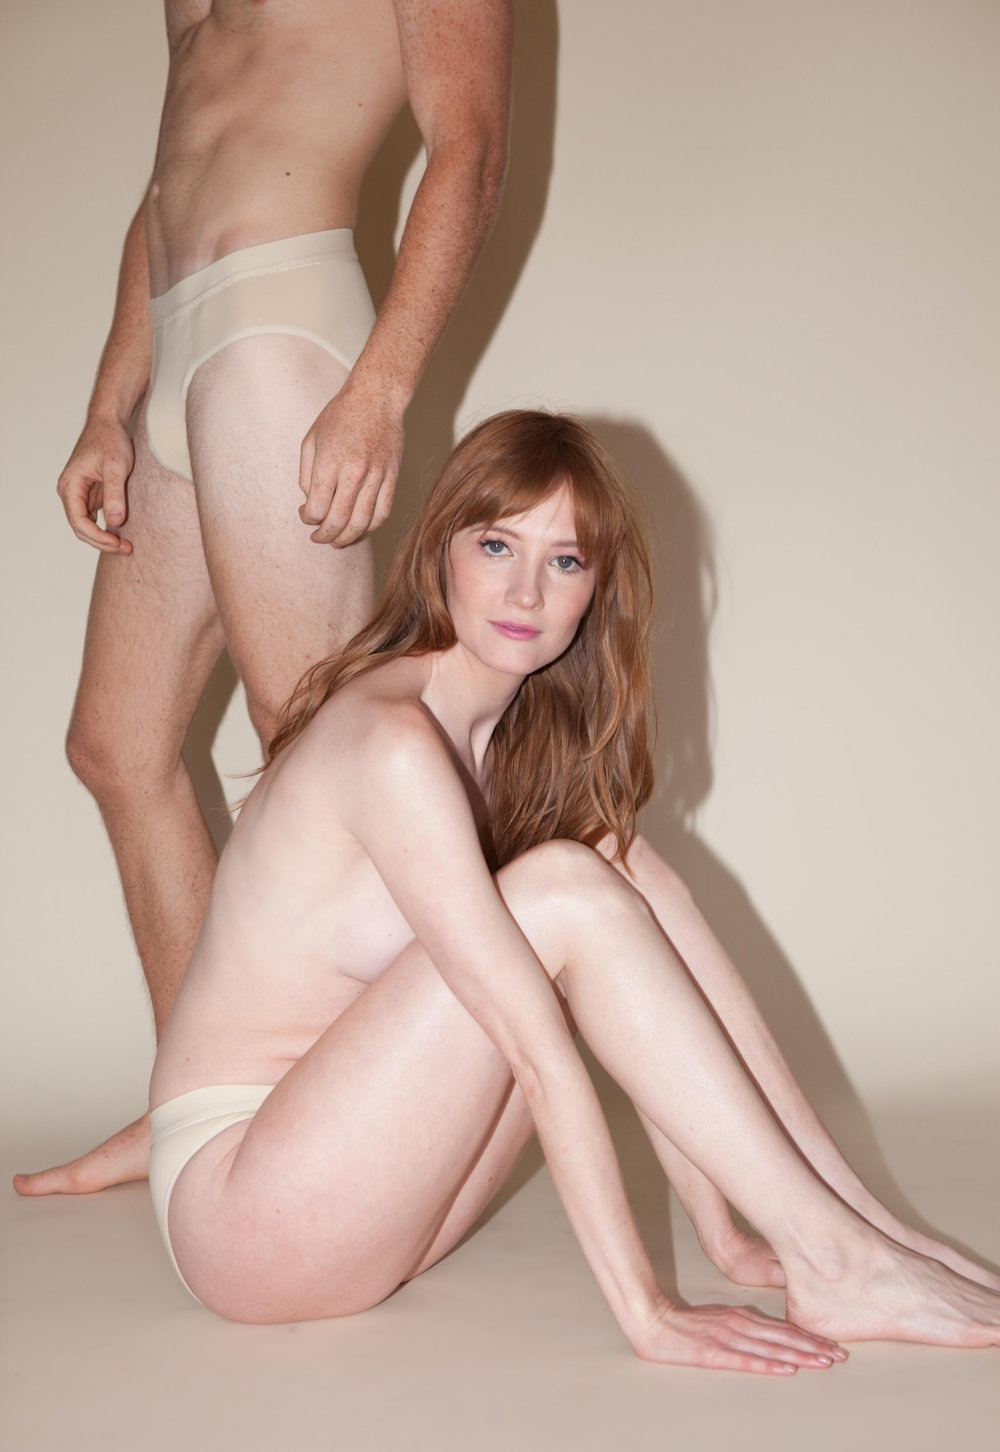 Unmentionables - The softest set of undies ever produced.  Made for all skin tones and all body sizes.